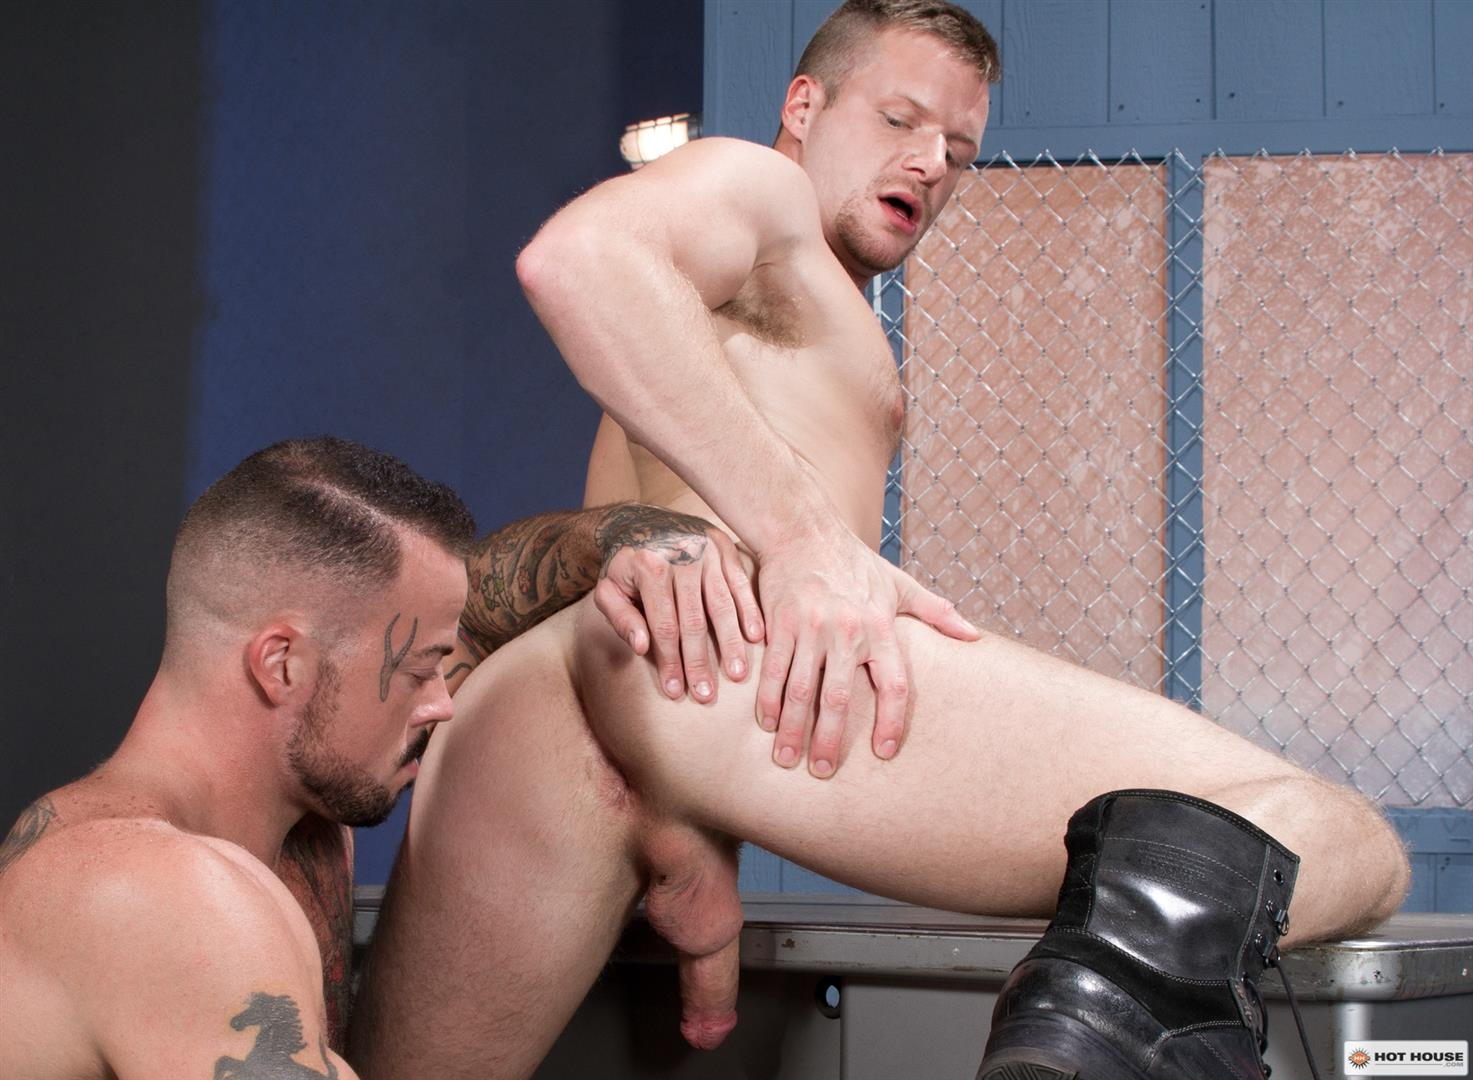 Hot-House-Brian-Bonds-and-Sean-Duran-Male-on-Male-Prison-Sex-Amateur-Gay-Porn-09 Correctional Officer Brian Bonds Gets Fucked By Inmate Sean Duran